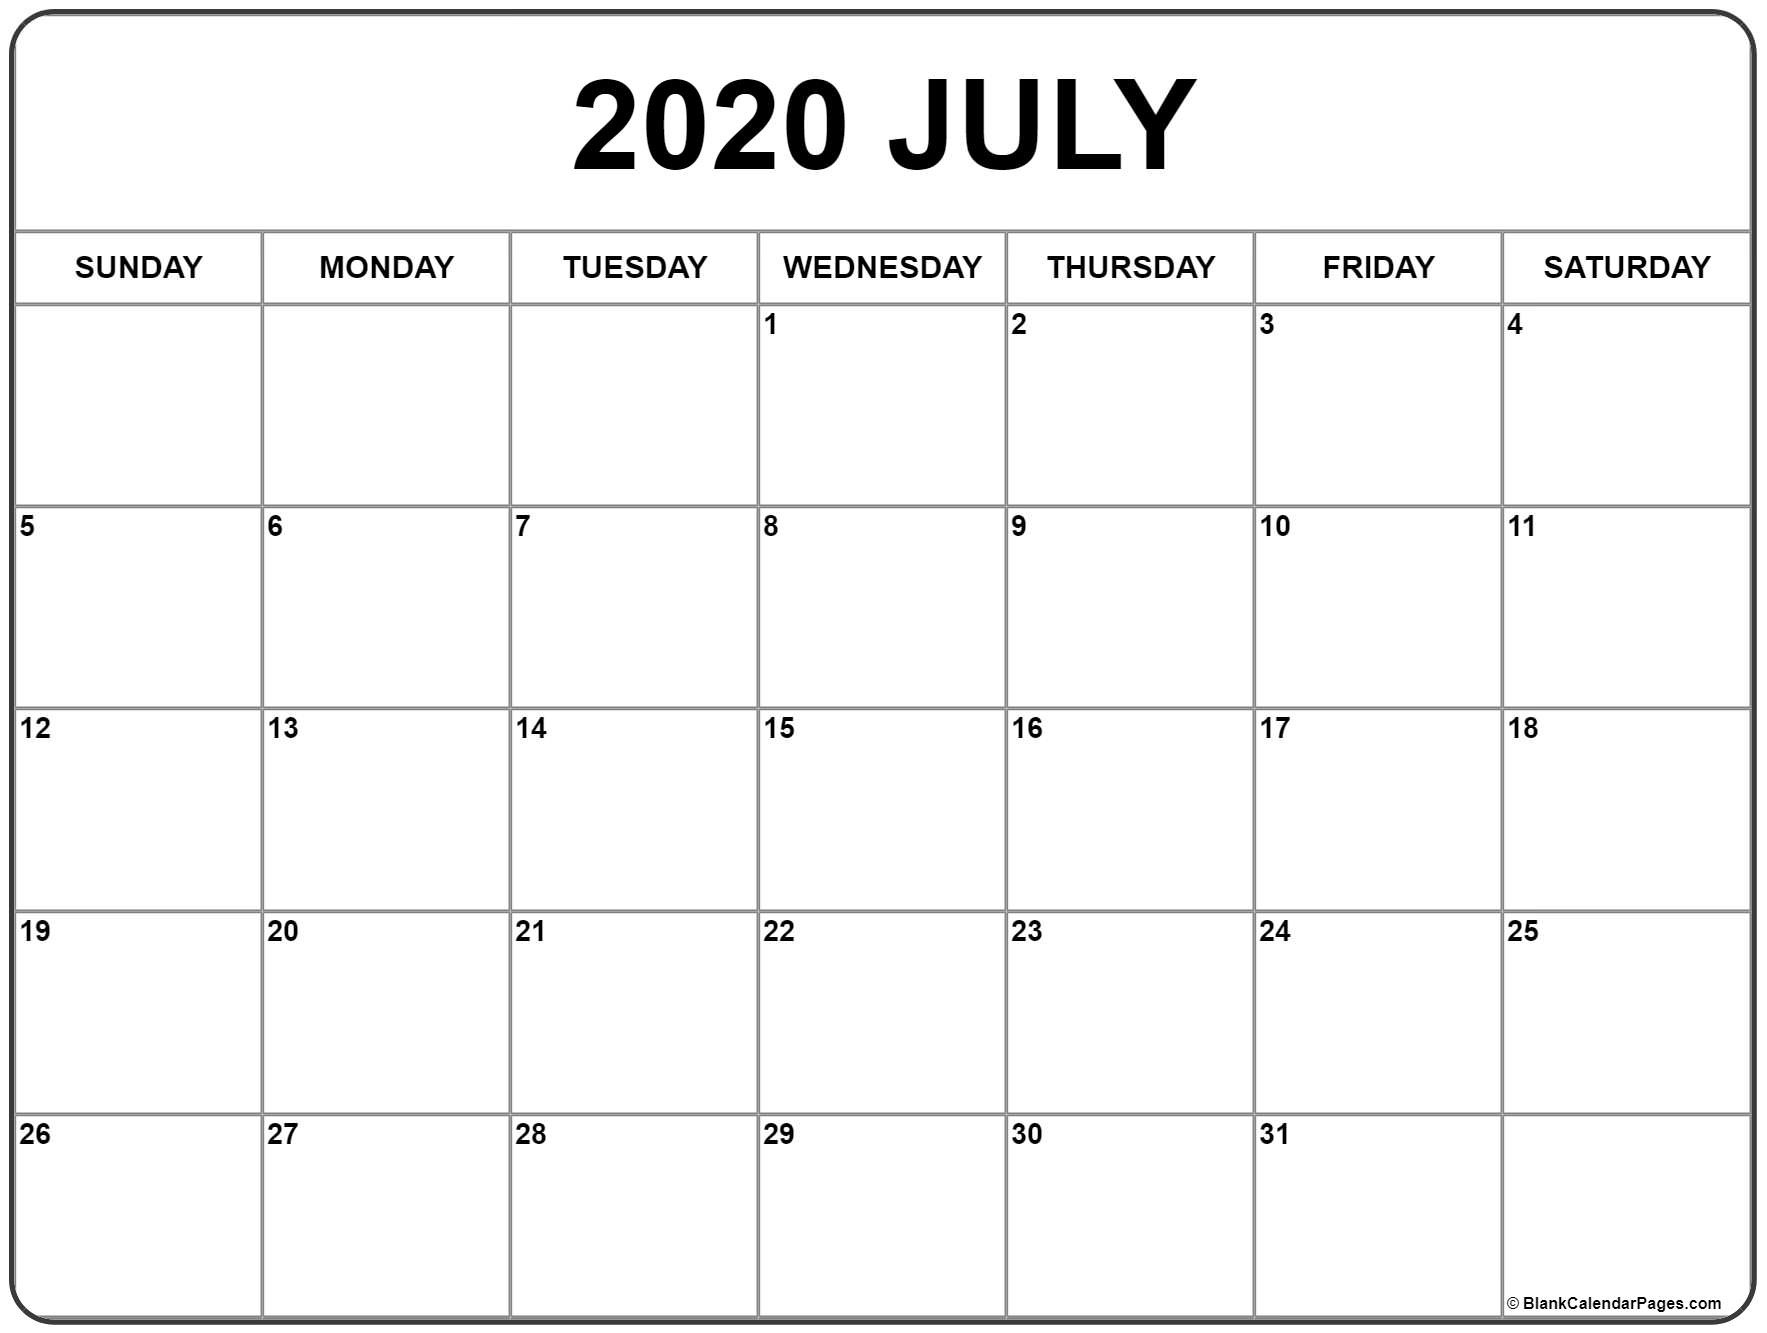 July 2020 Calendar | Free Printable Monthly Calendars  Full Page Calendar Print Out